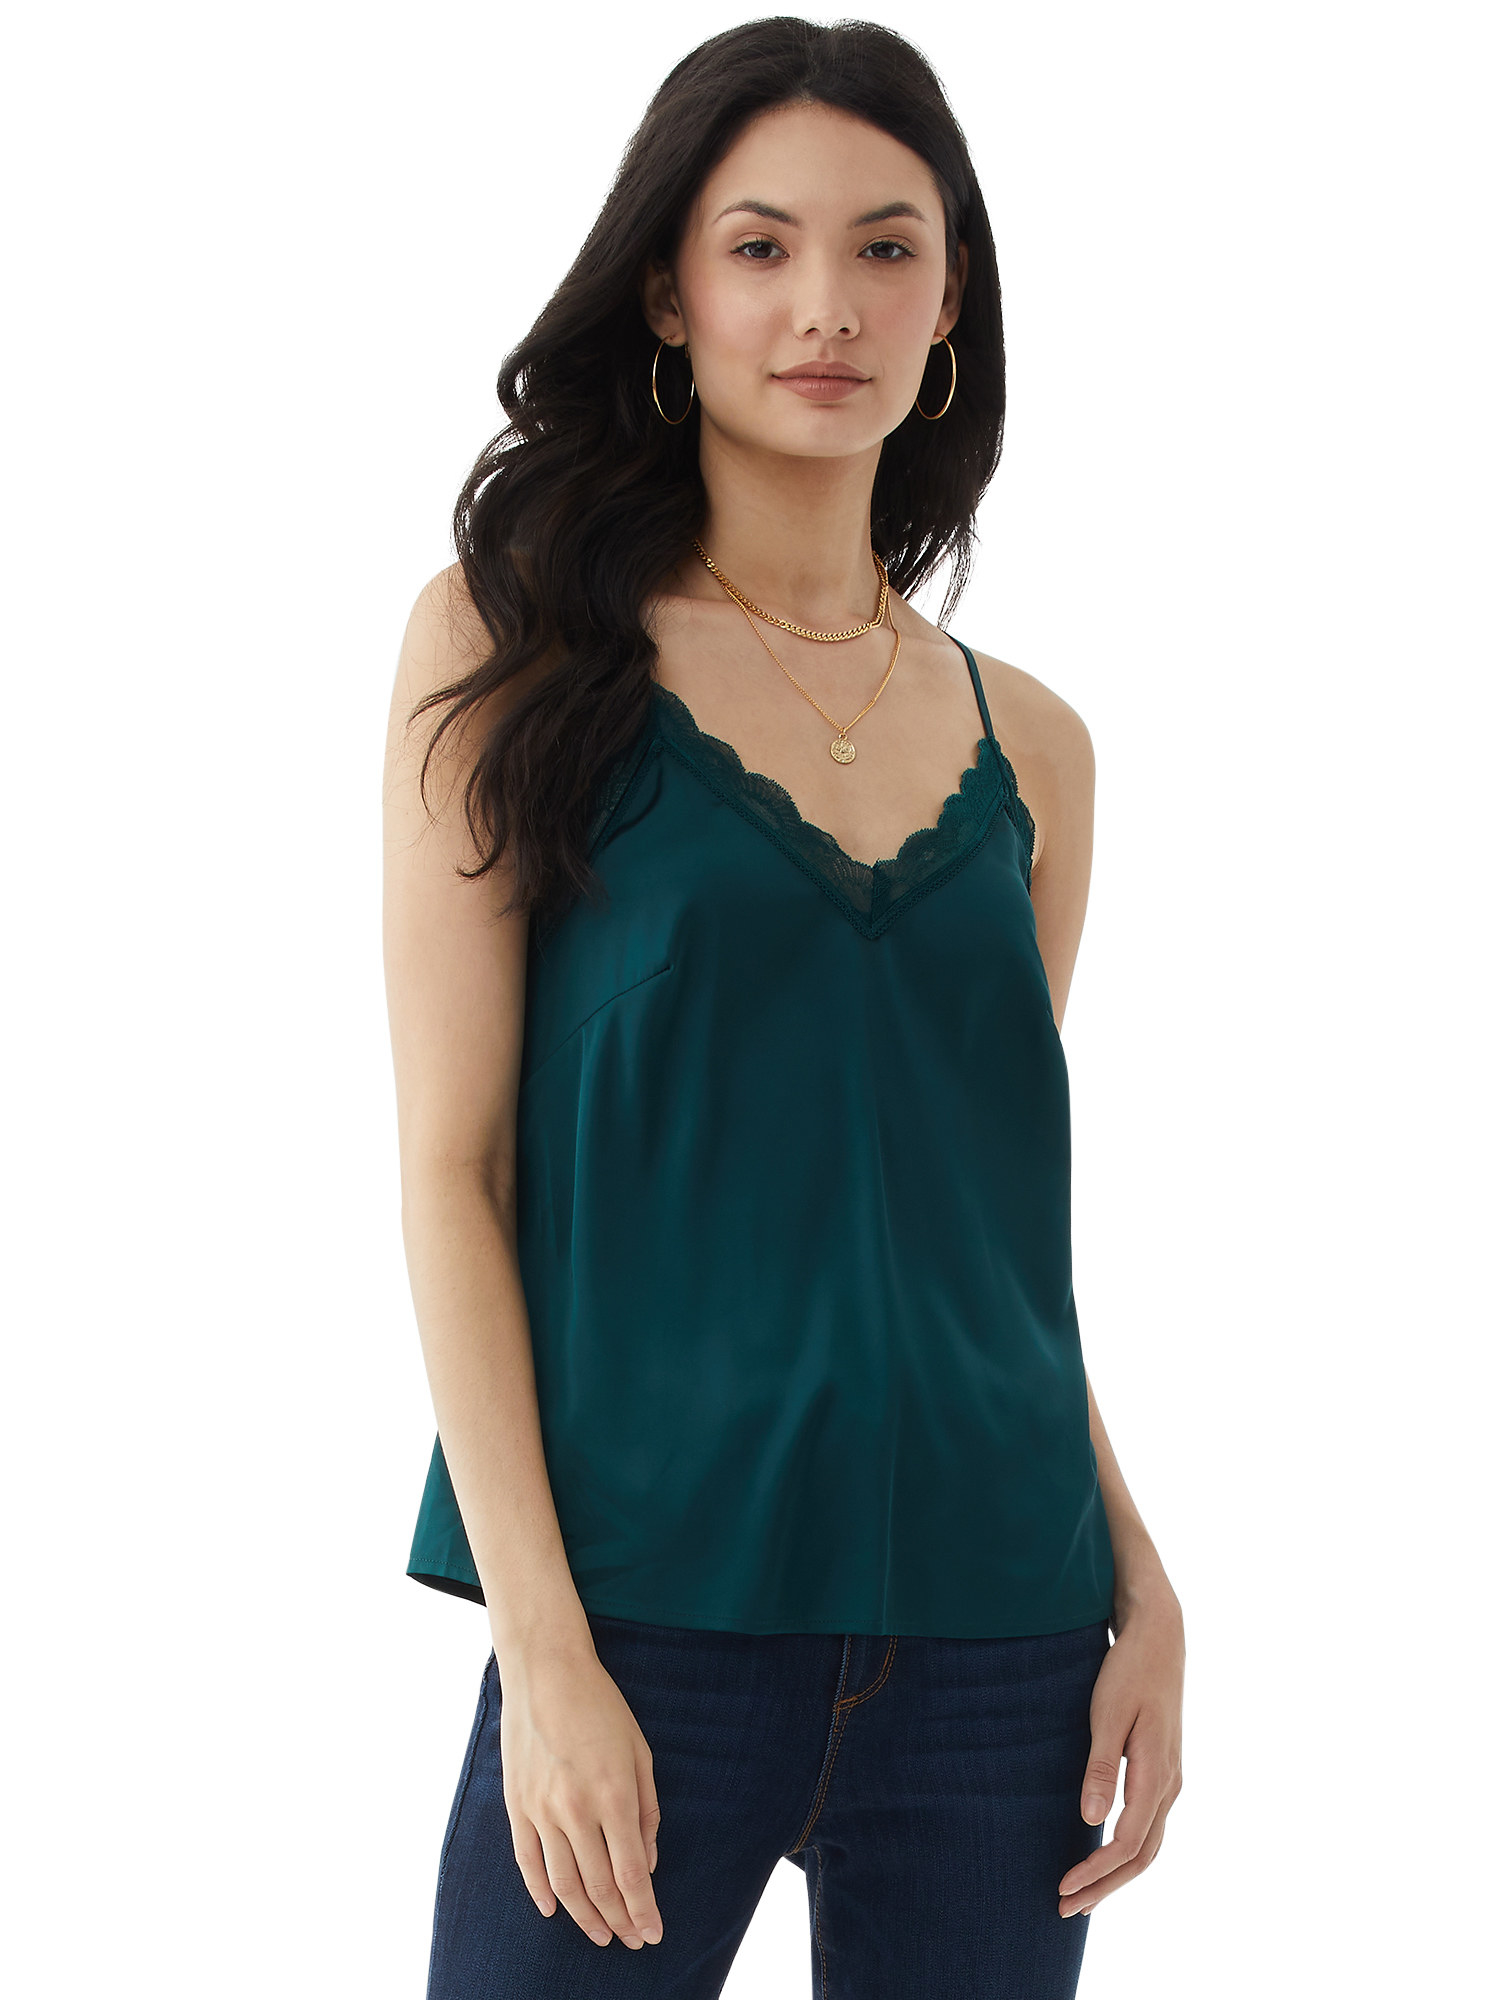 person wearing a hunter green cami tank top over blue jeans